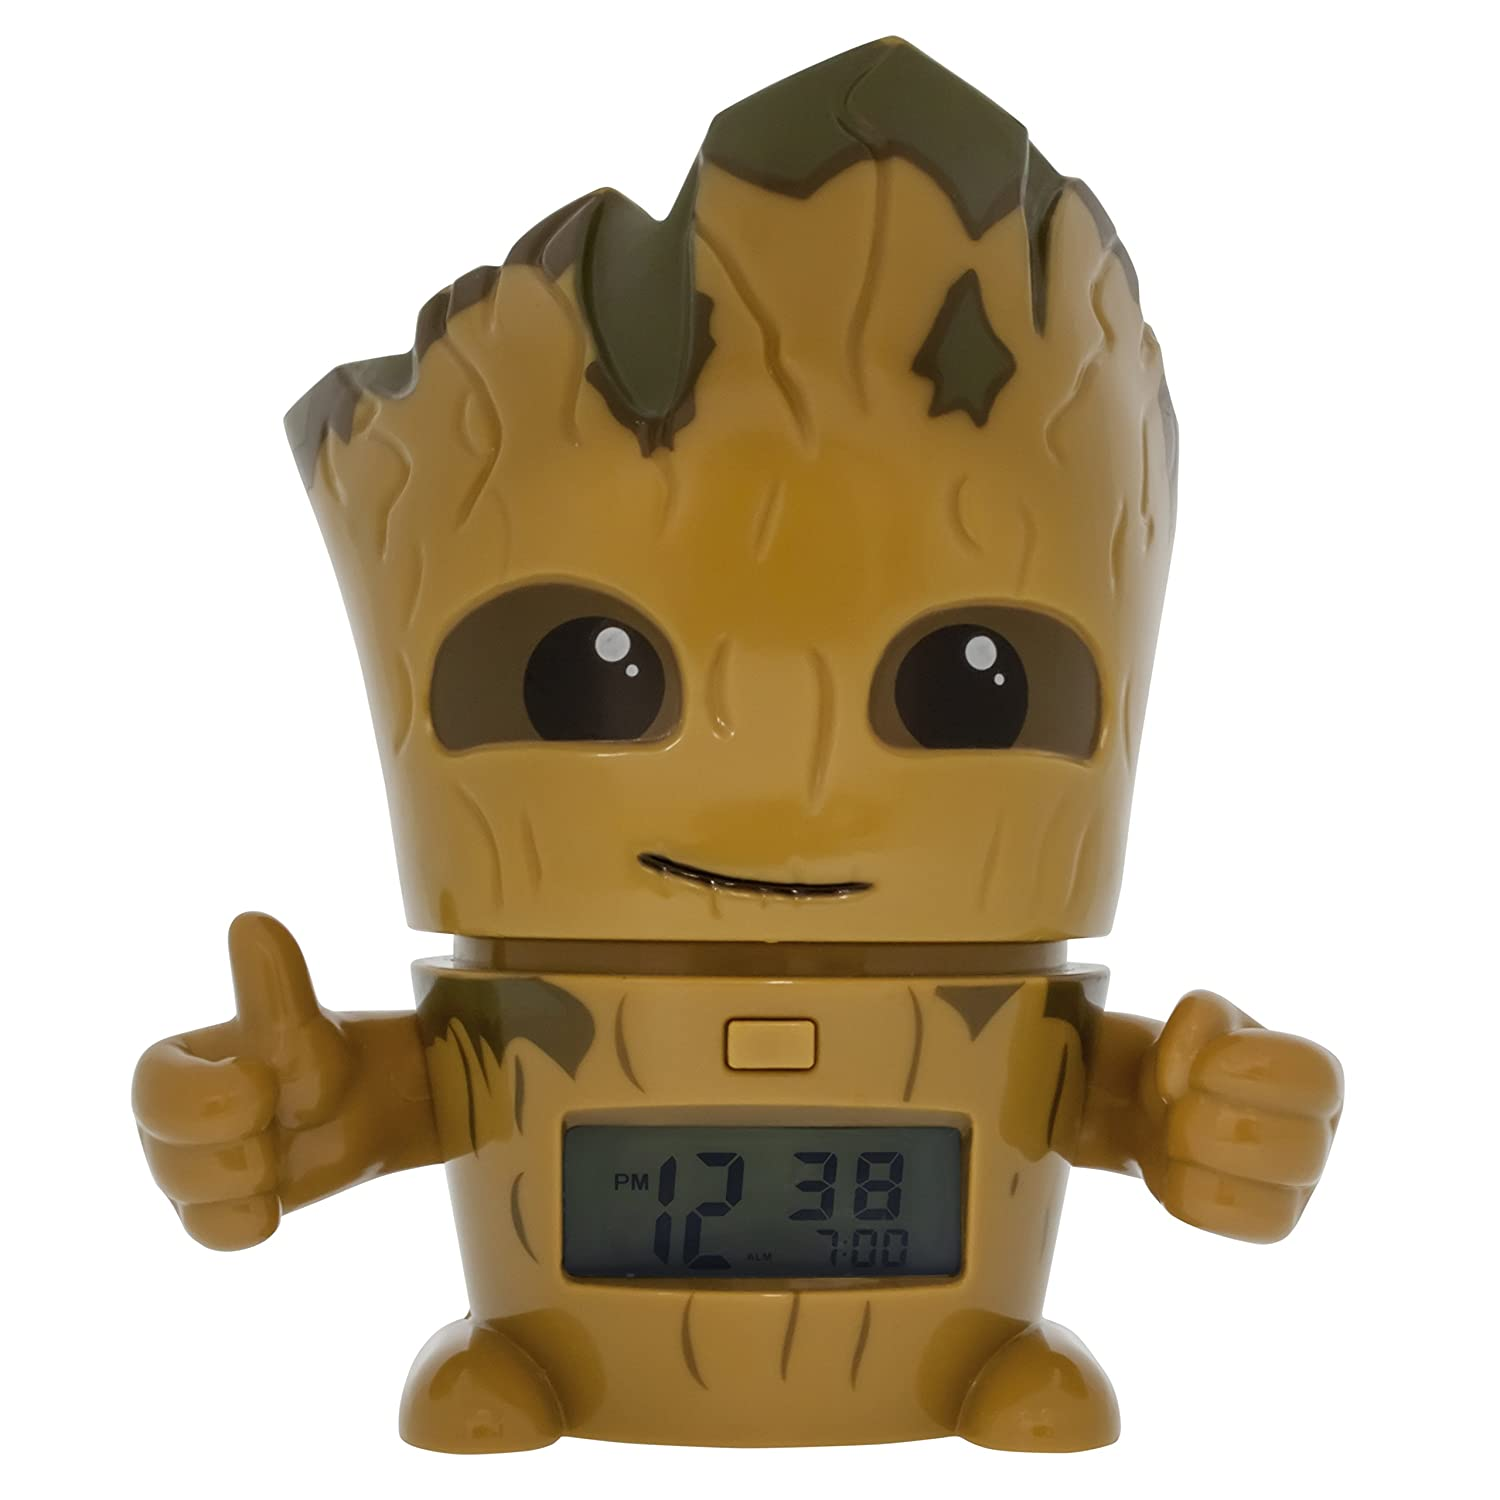 BulbBotz Marvel 2021340 Guardians of The Galaxy Vol.2 Groot Kids Night Light Alarm Clock with Characterised Sound | Brown/Green| Plastic | 5.5 inches Tall | LCD Display | boy Girl | Official Bulb Botz CLIDA Accessory Consumer Accessories